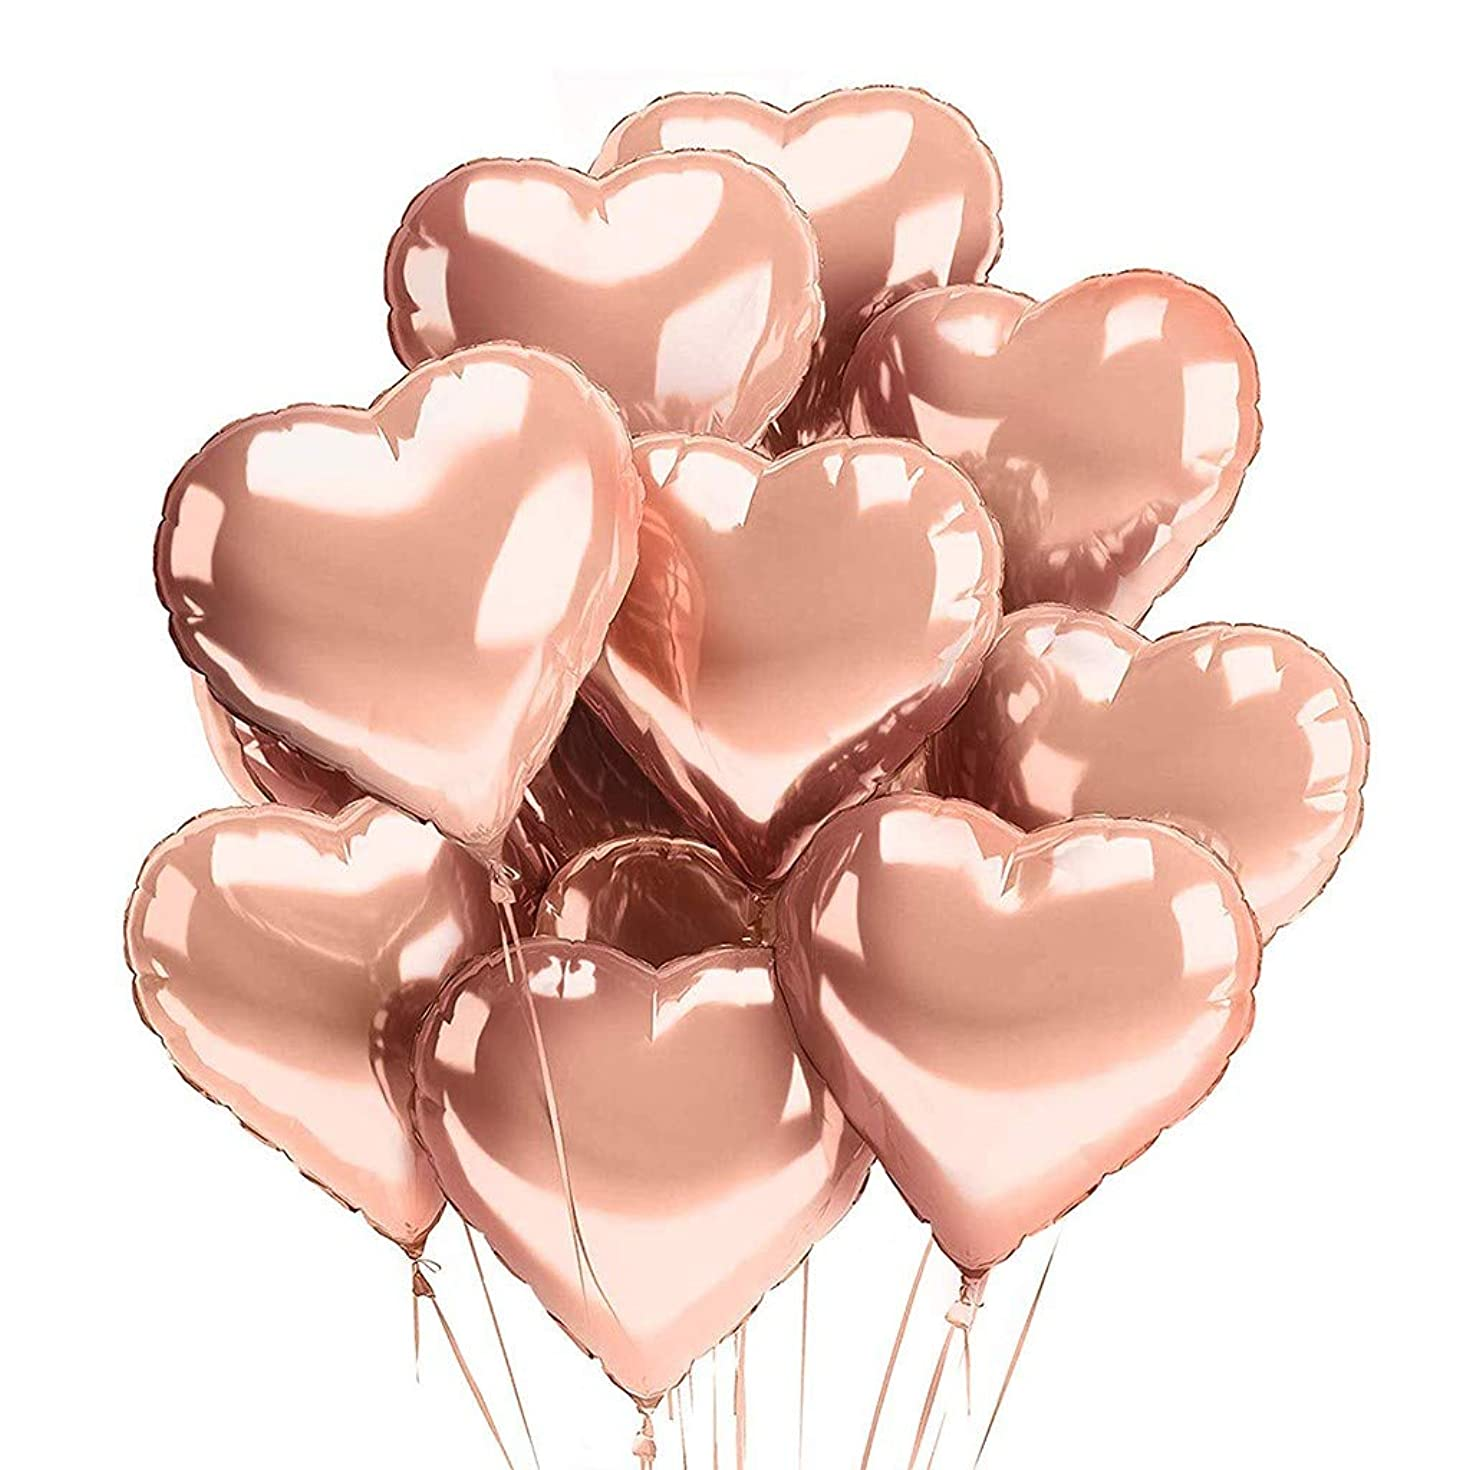 ??Ywoow?? Confetti Balloons, Happy Birthday Decor Balloons Kit Rose Gold Birthday Banner Confetti Balloons